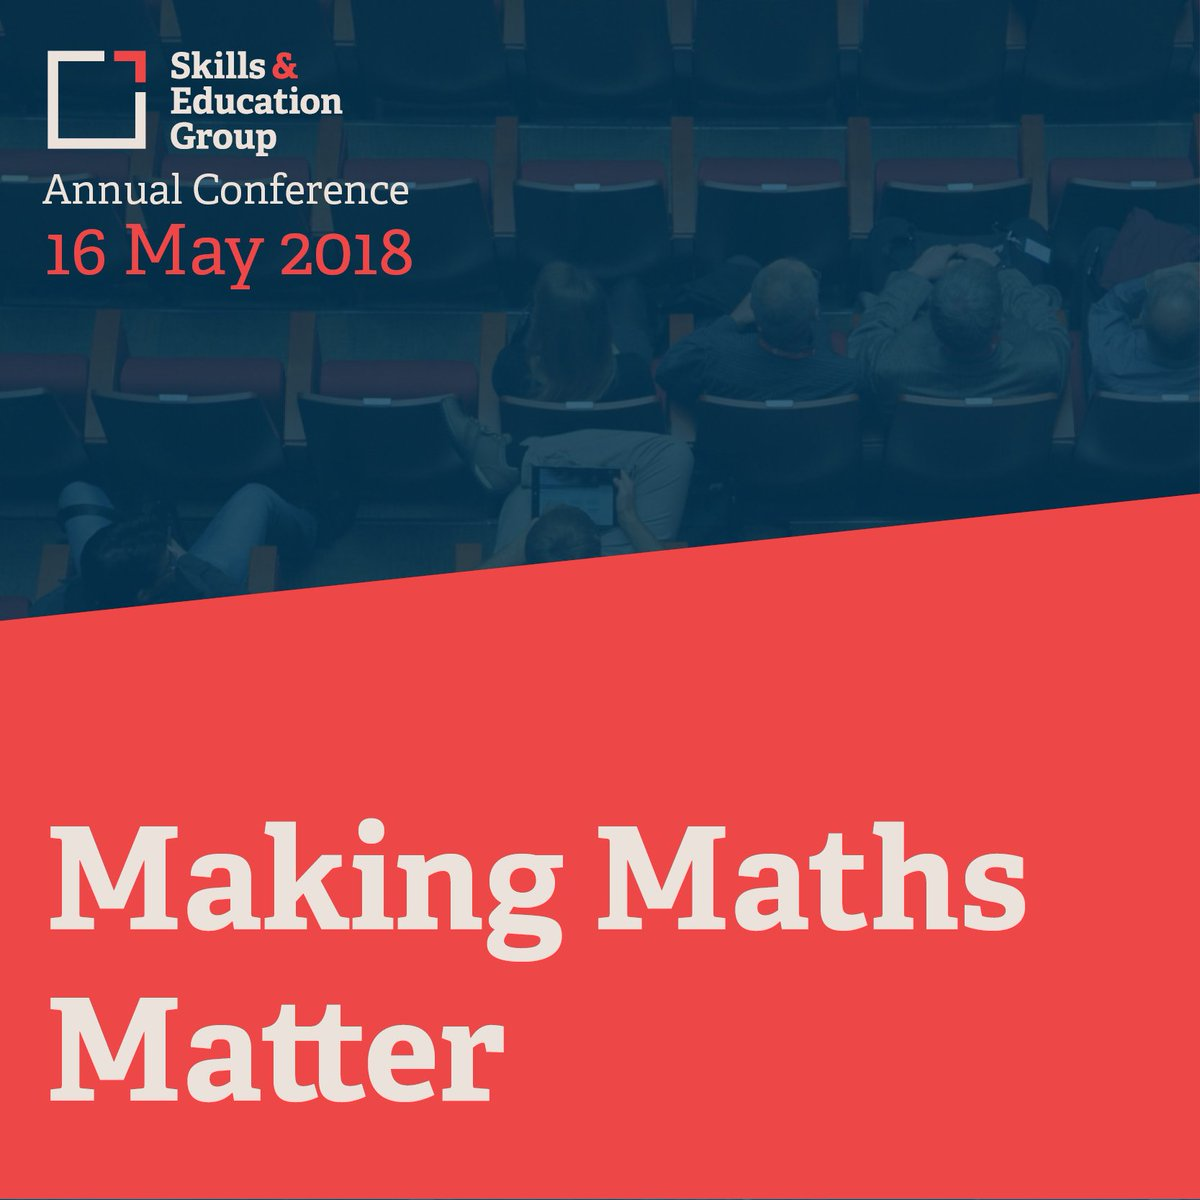 a69f04eb2d This workshop will explore how vocational practitioner courses can  incorporate maths into the curriculum alongside employer engagement.